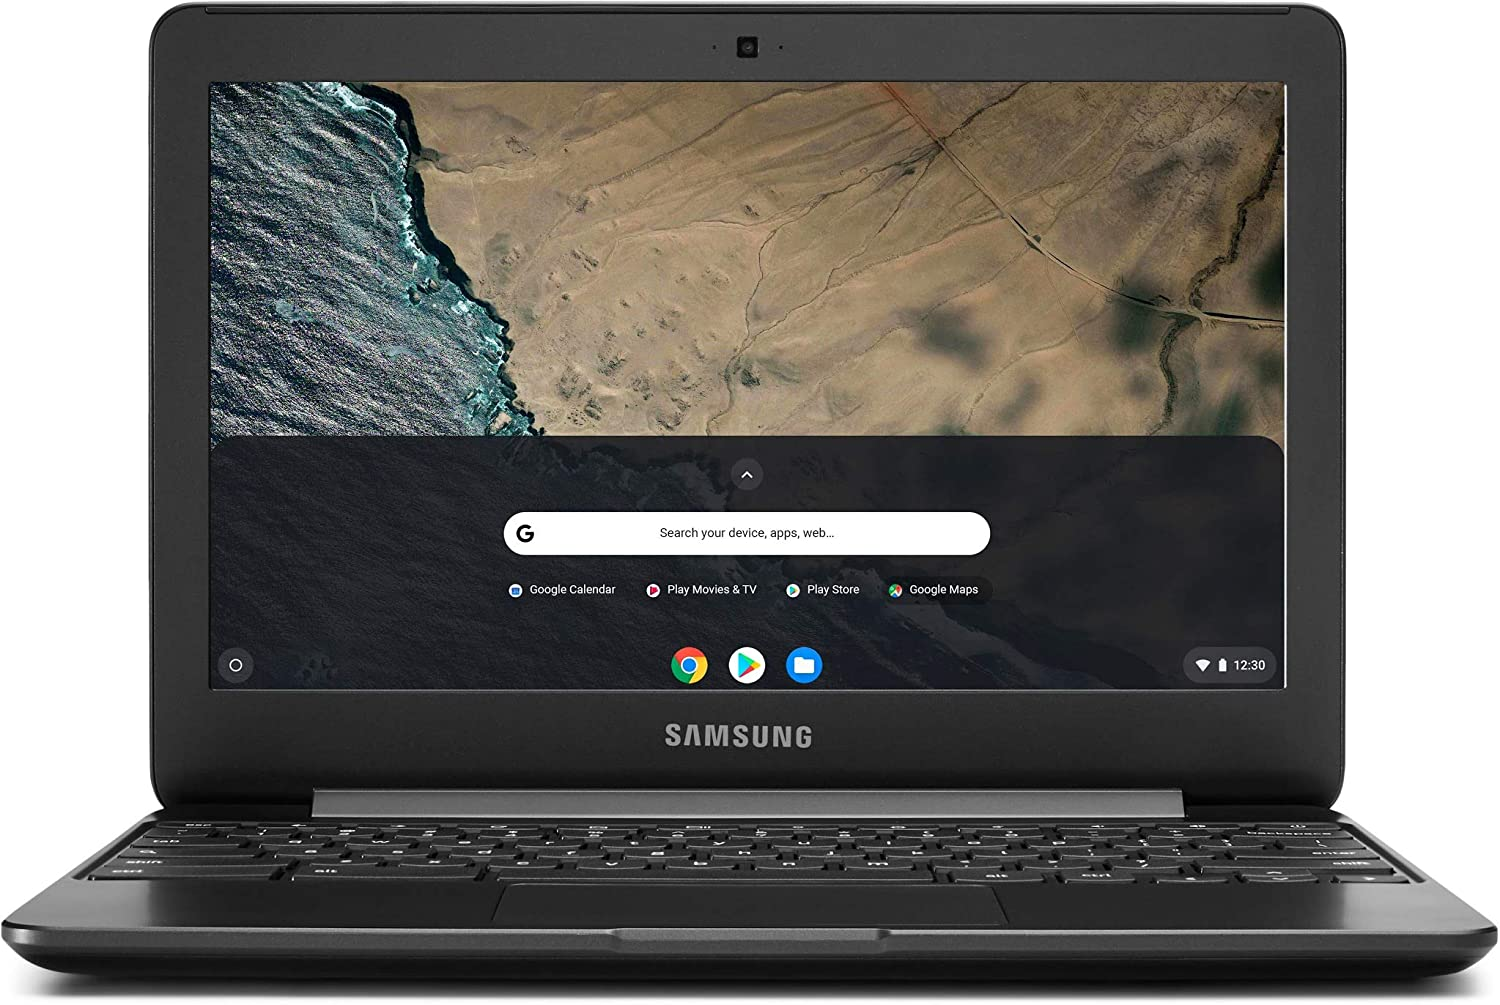 Samsung XE500C13-S02US 11.6″ Chromebook Intel Celeron N3060 4GB RAM 16GB eMMC ( Renewed)